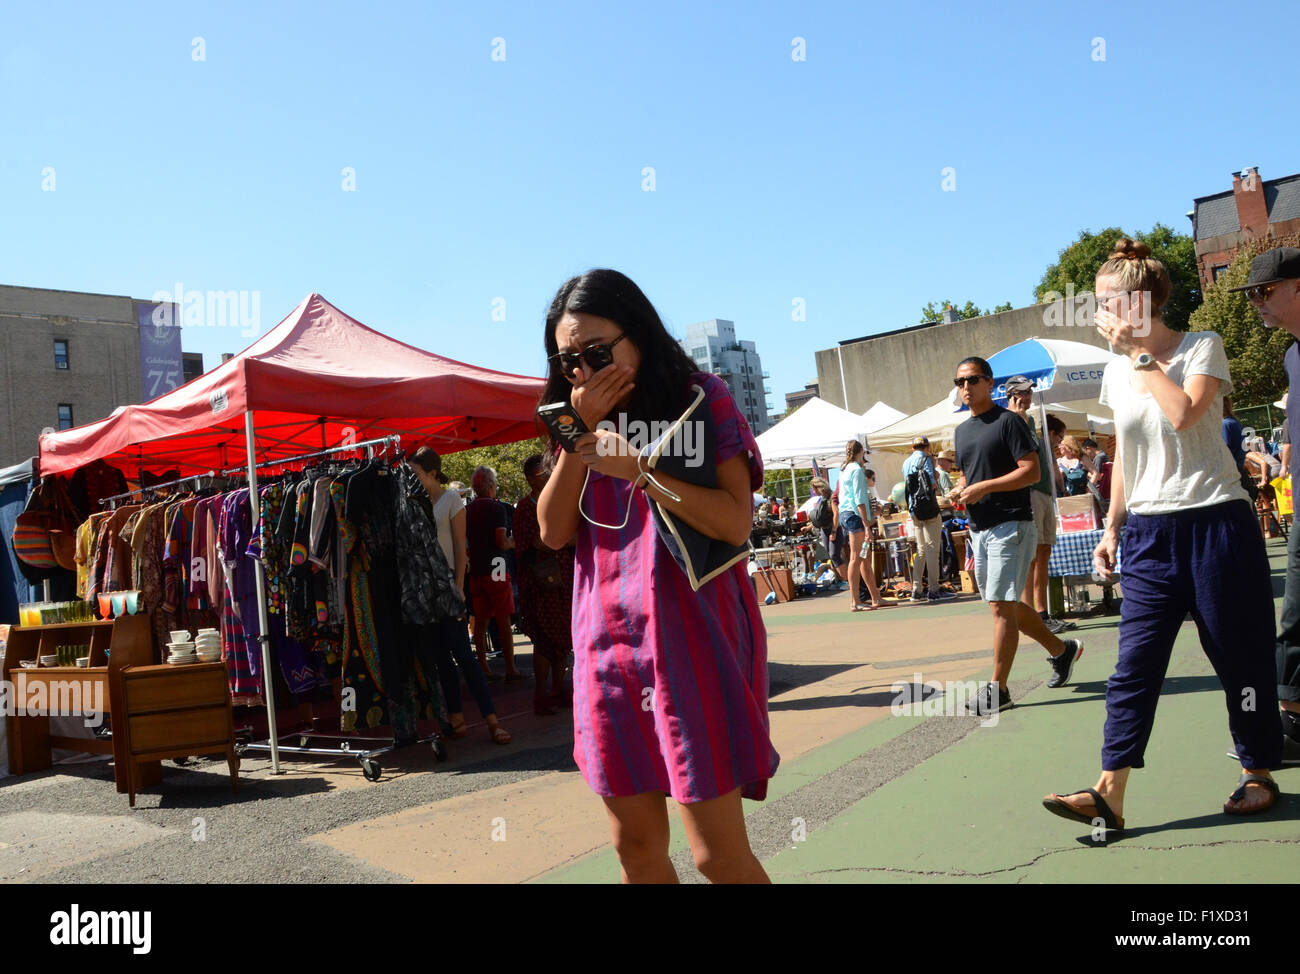 woman reacts with shock at phone message brooklyn flea market new york - Stock Image